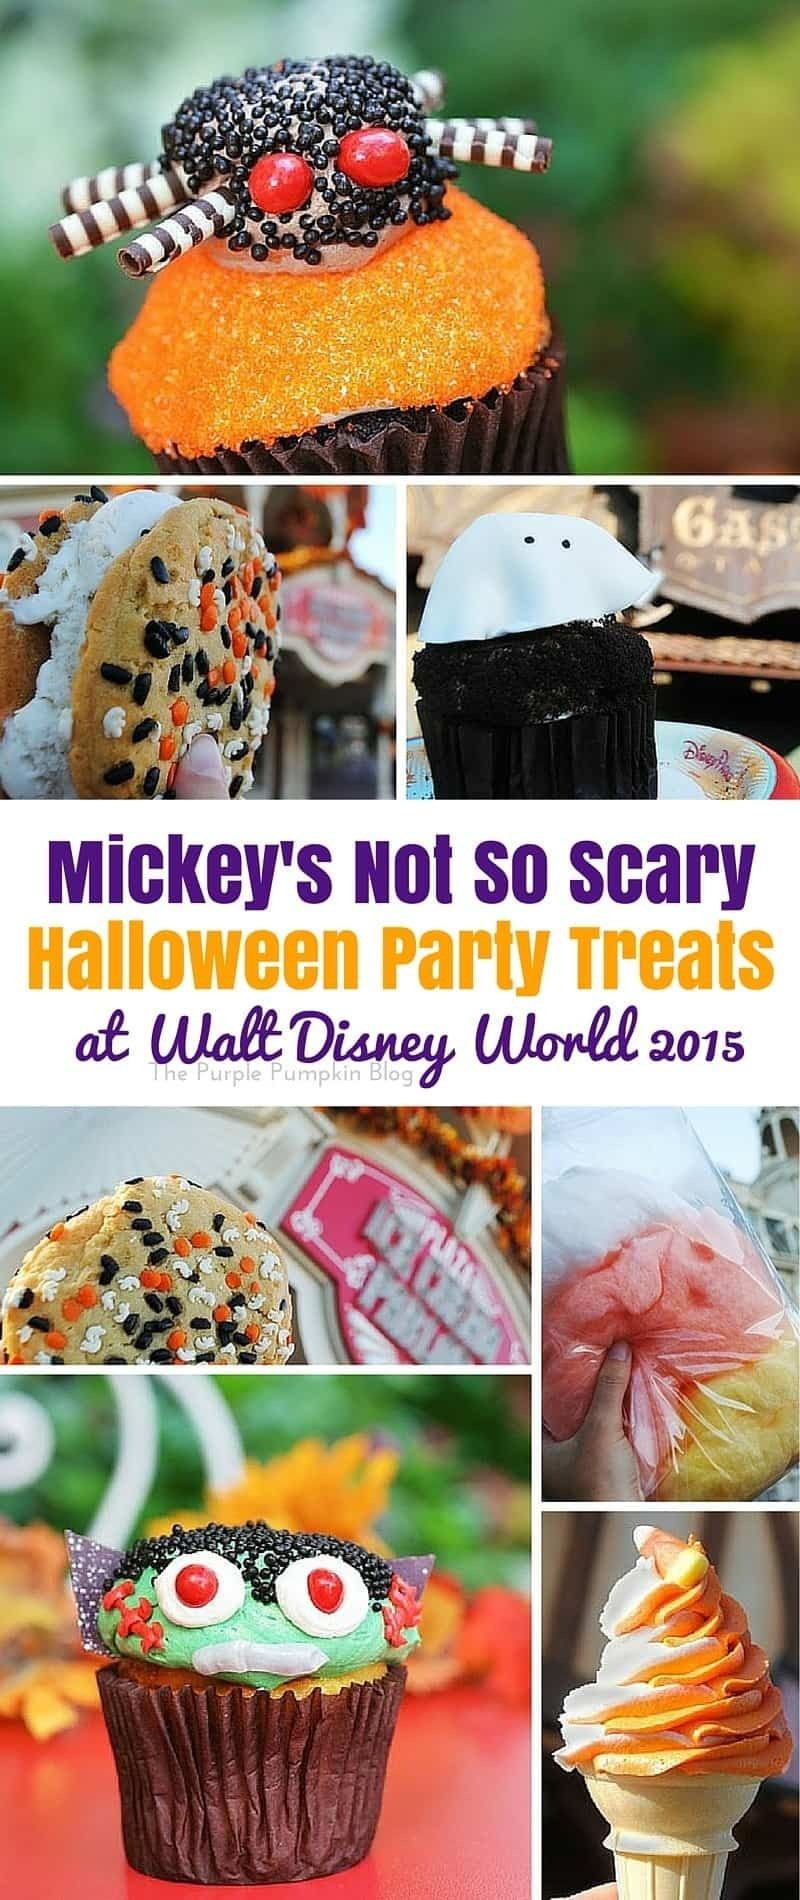 Mickey's Not So Scary Halloween Party Treats at Walt Disney World 2015 63/#100DaysOfDisney